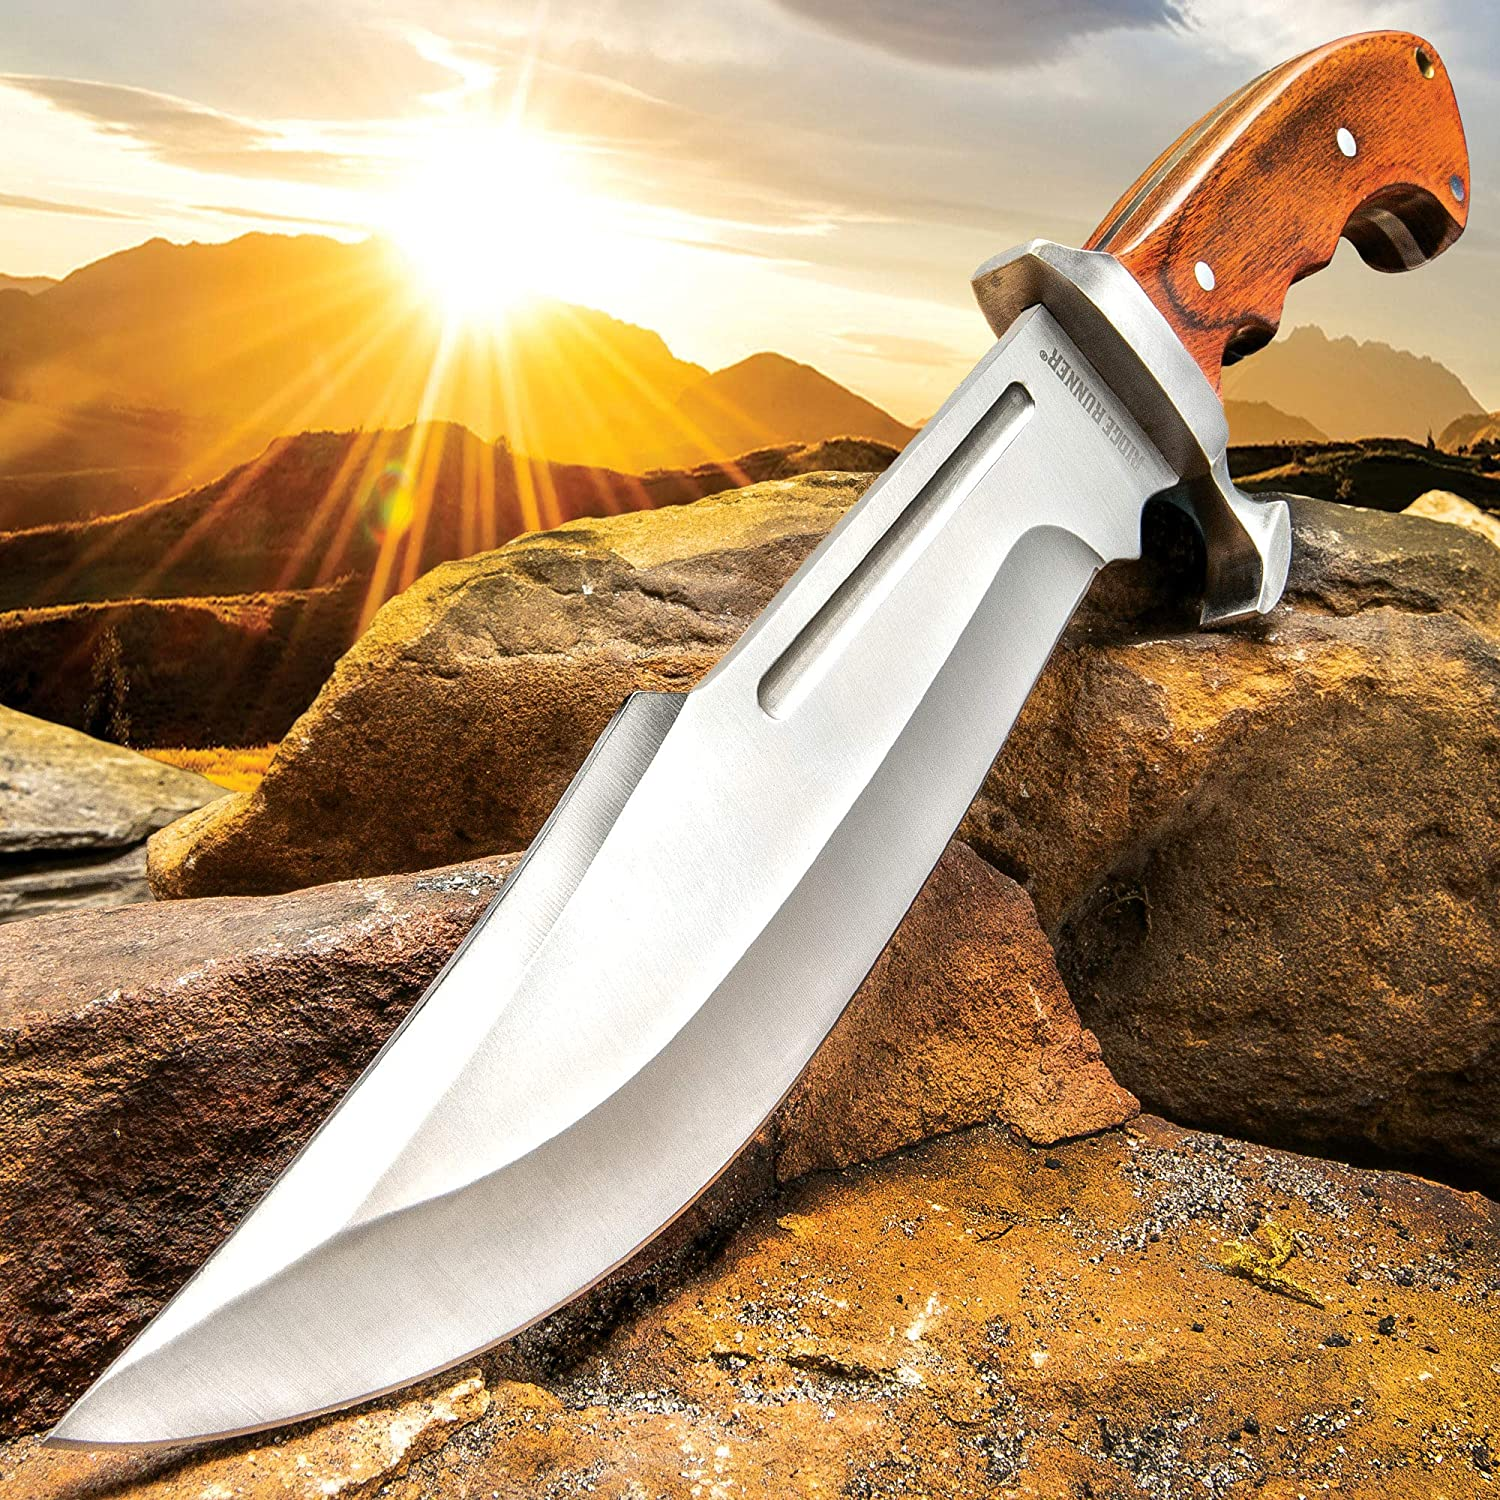 Ridge Runner Woodland Reverie Bowie Fixed Blade Knife – Stainless Steel, Full Tang – Genuine Zebrawood – Nylon Sheath – Collecting, Field Use, Display and More – 13 1 4